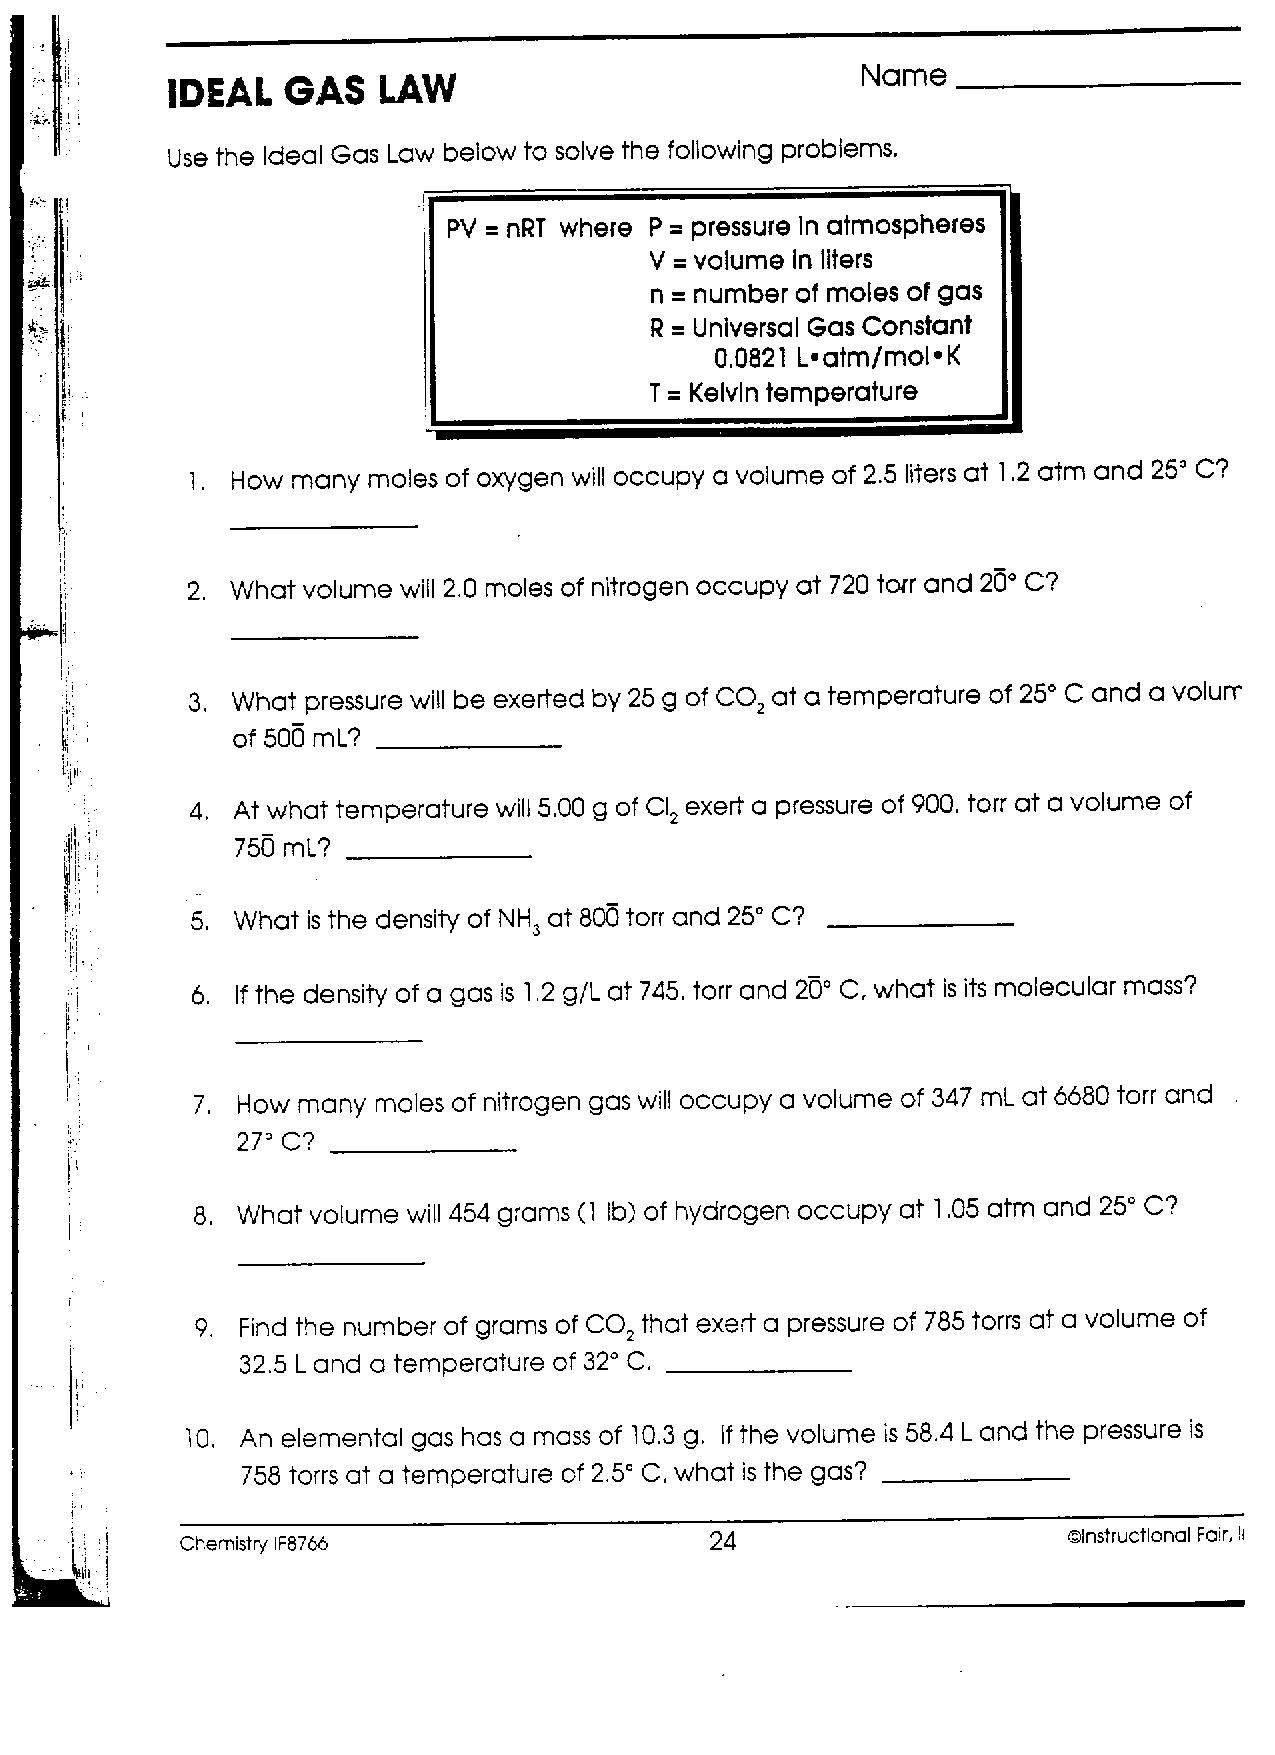 Chem IIB Mr Phelps Big Rapids HS – Ideal Gas Law Worksheet Answers